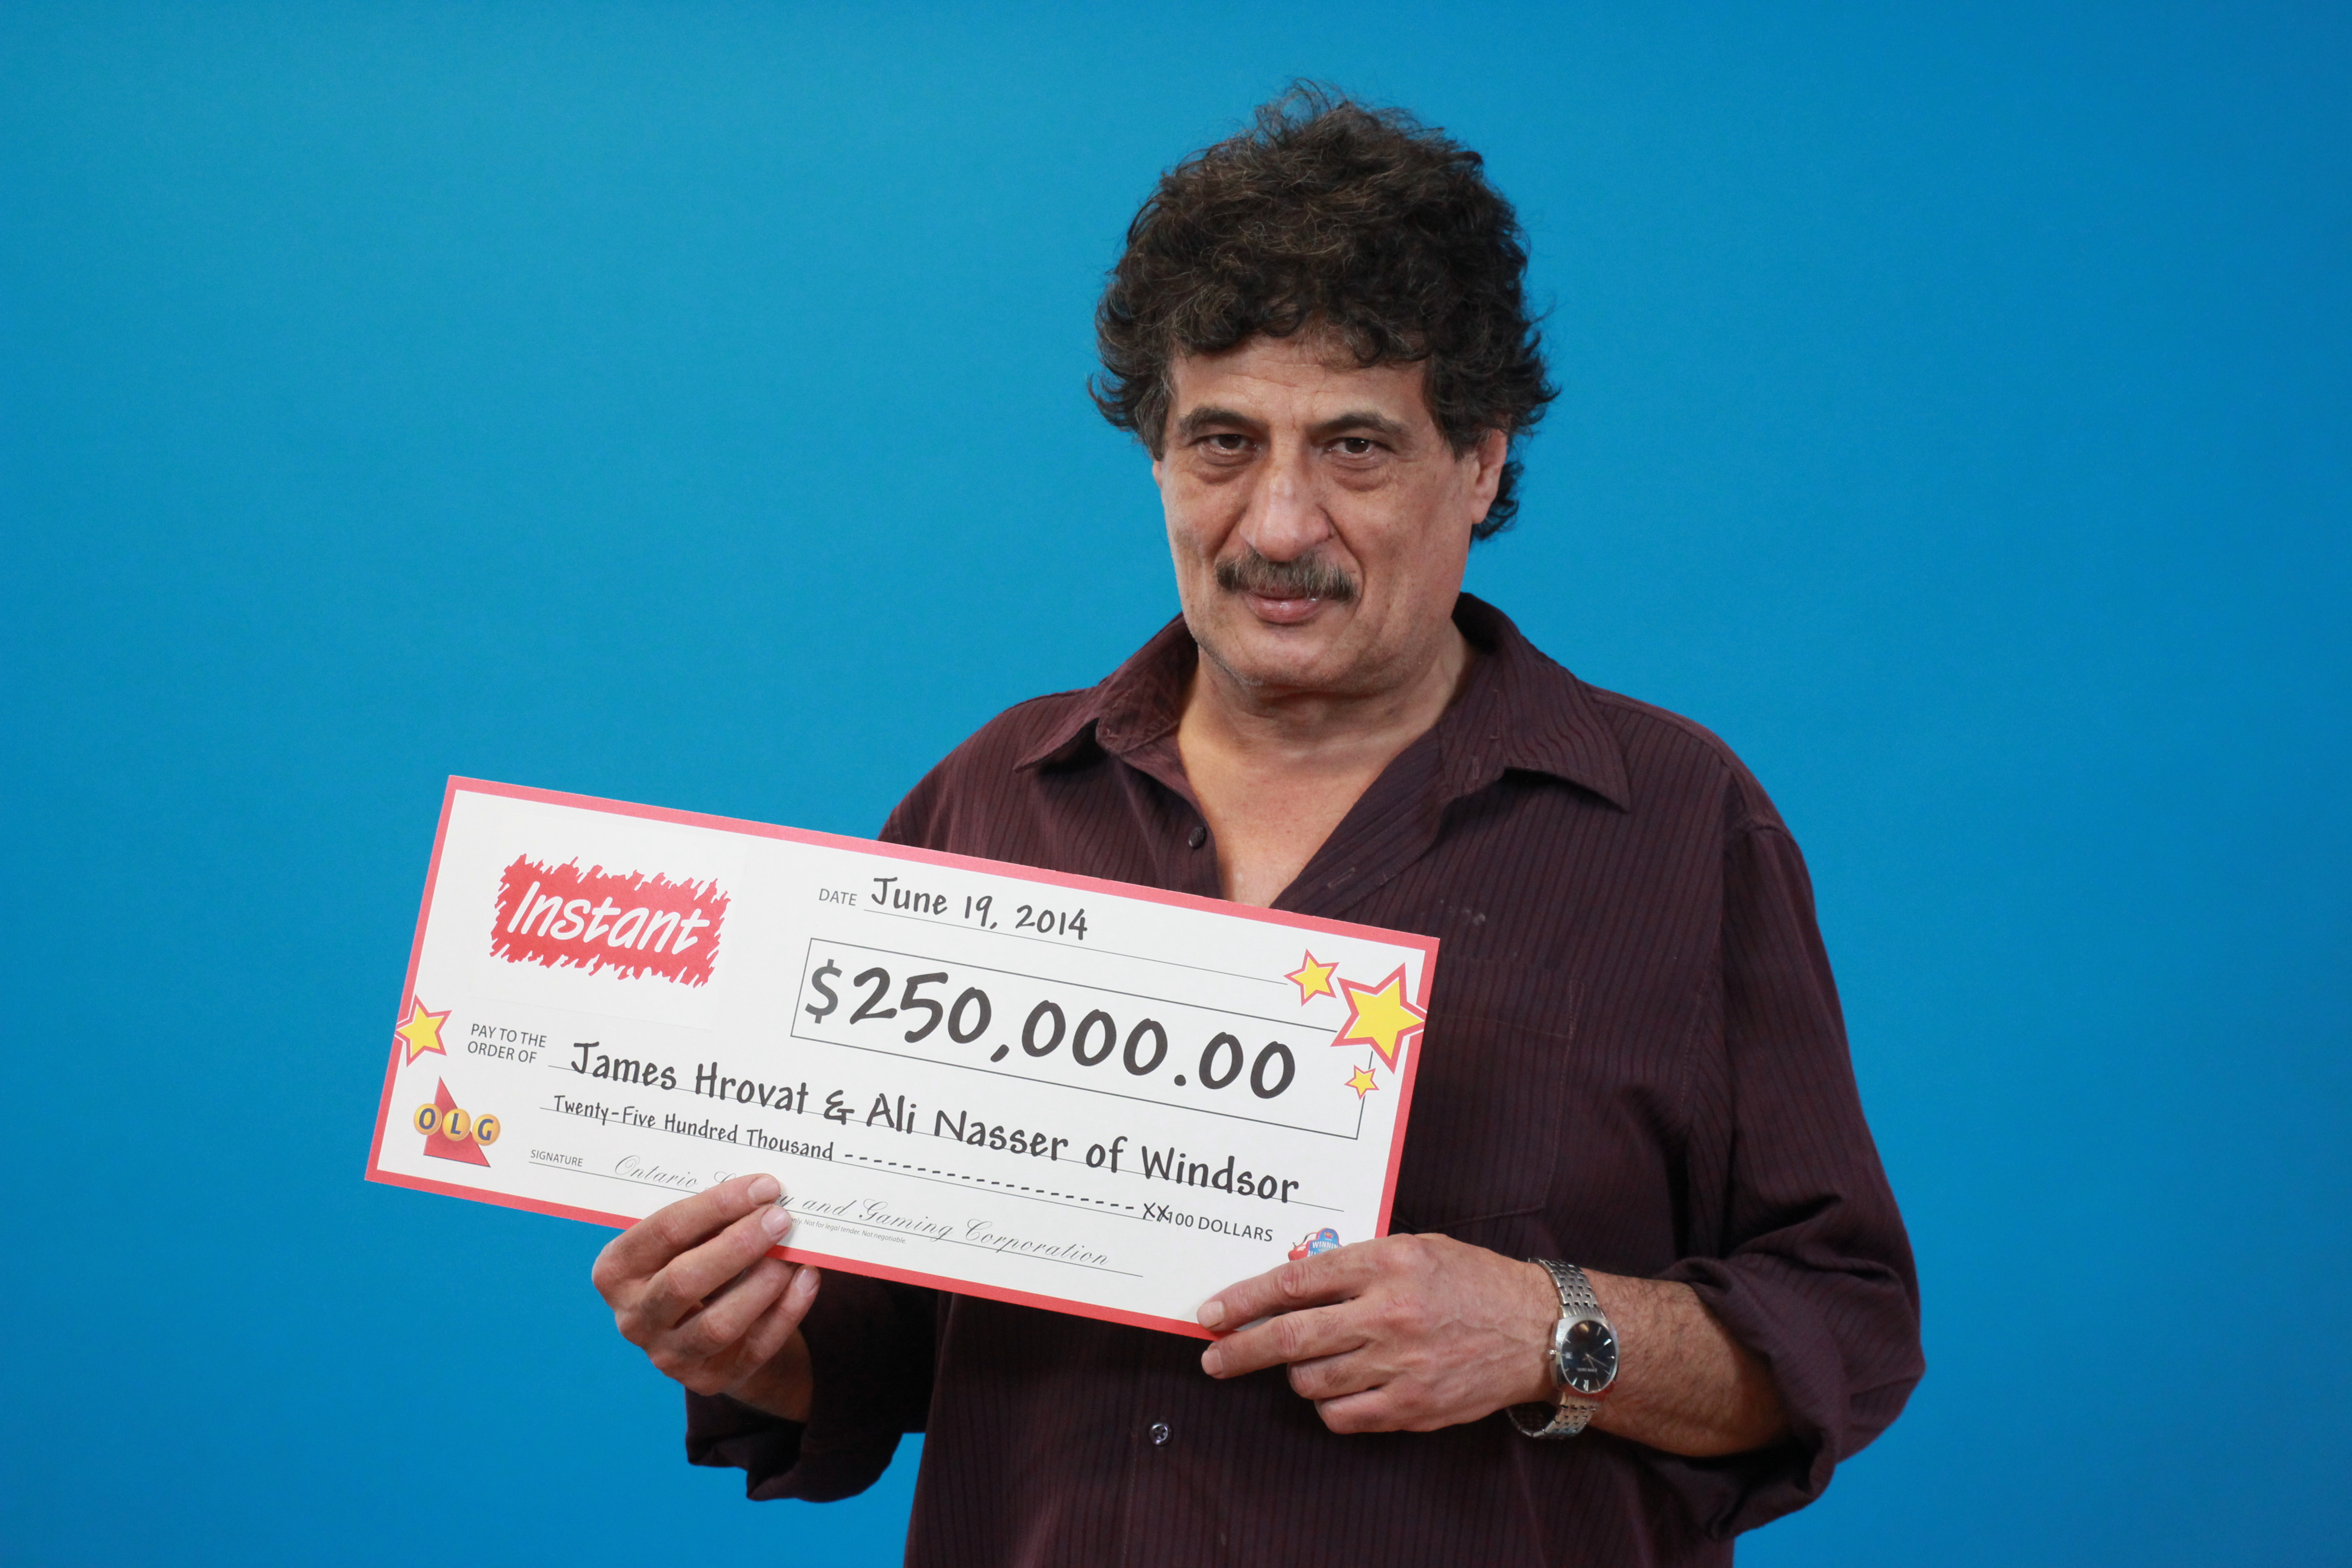 Photo of James Hrovat courtesy of the Ontario Lottery and Gaming Corporation.